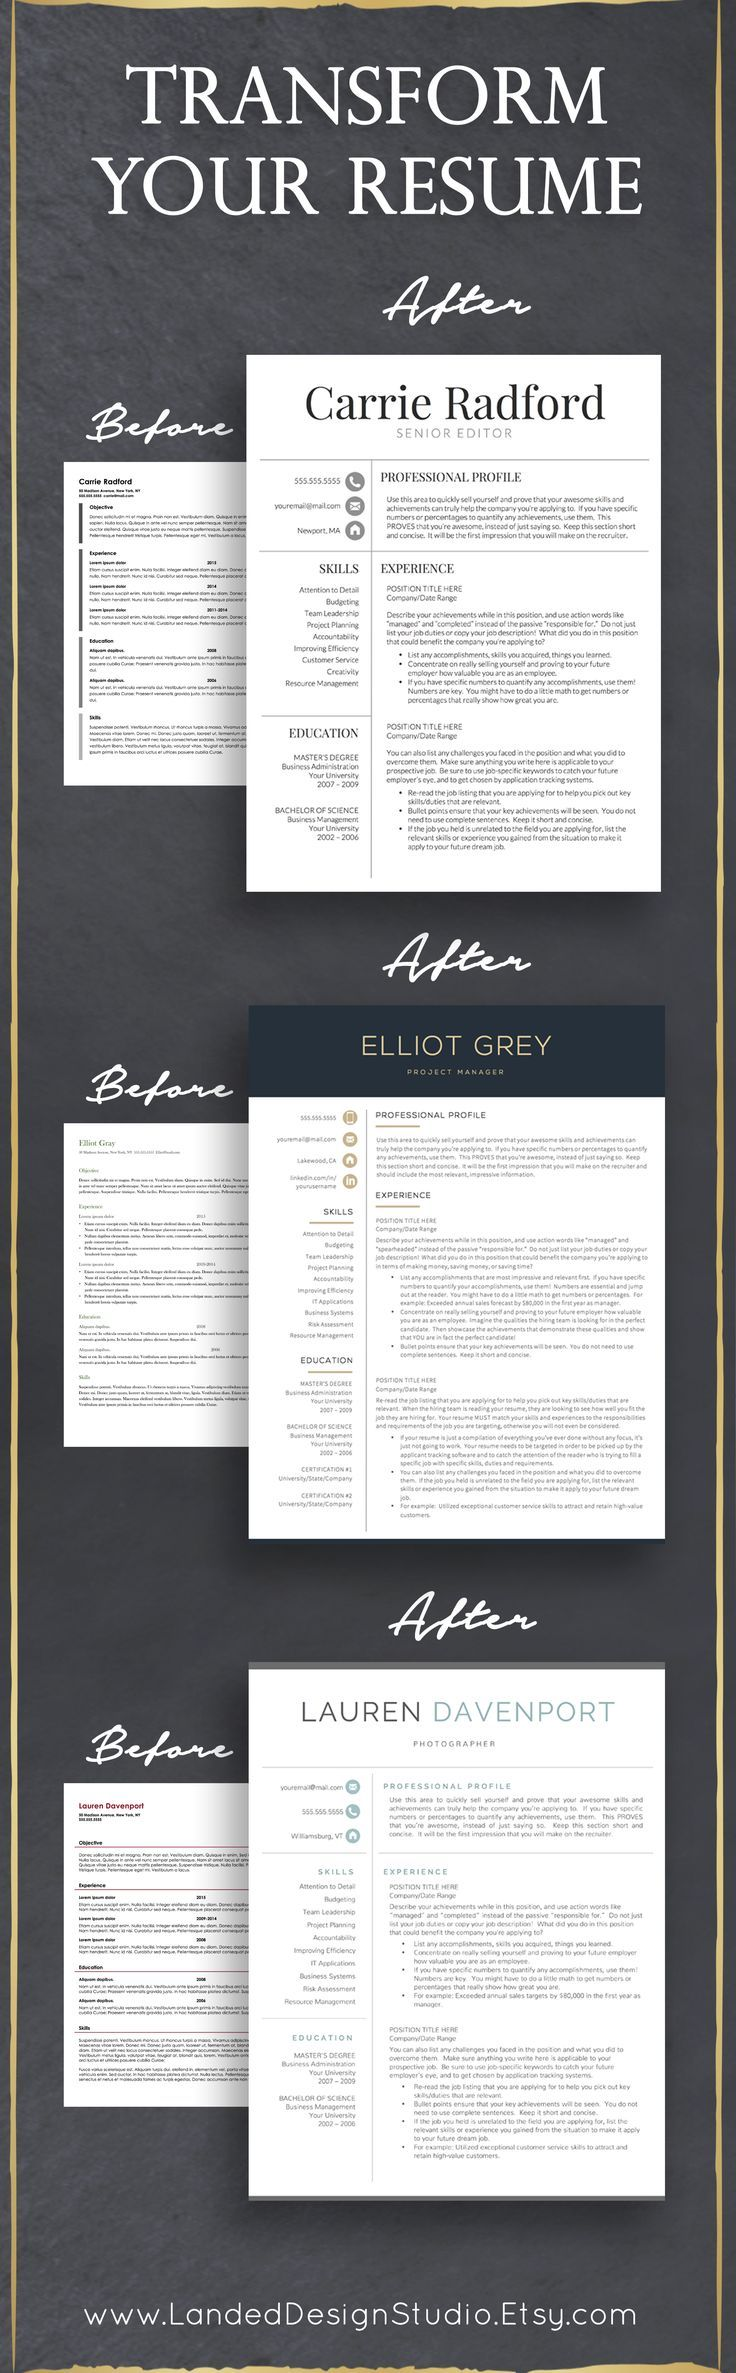 best ideas about resume writing resume resume completely transform your resume a professional resume template resume writing tips and resume advice